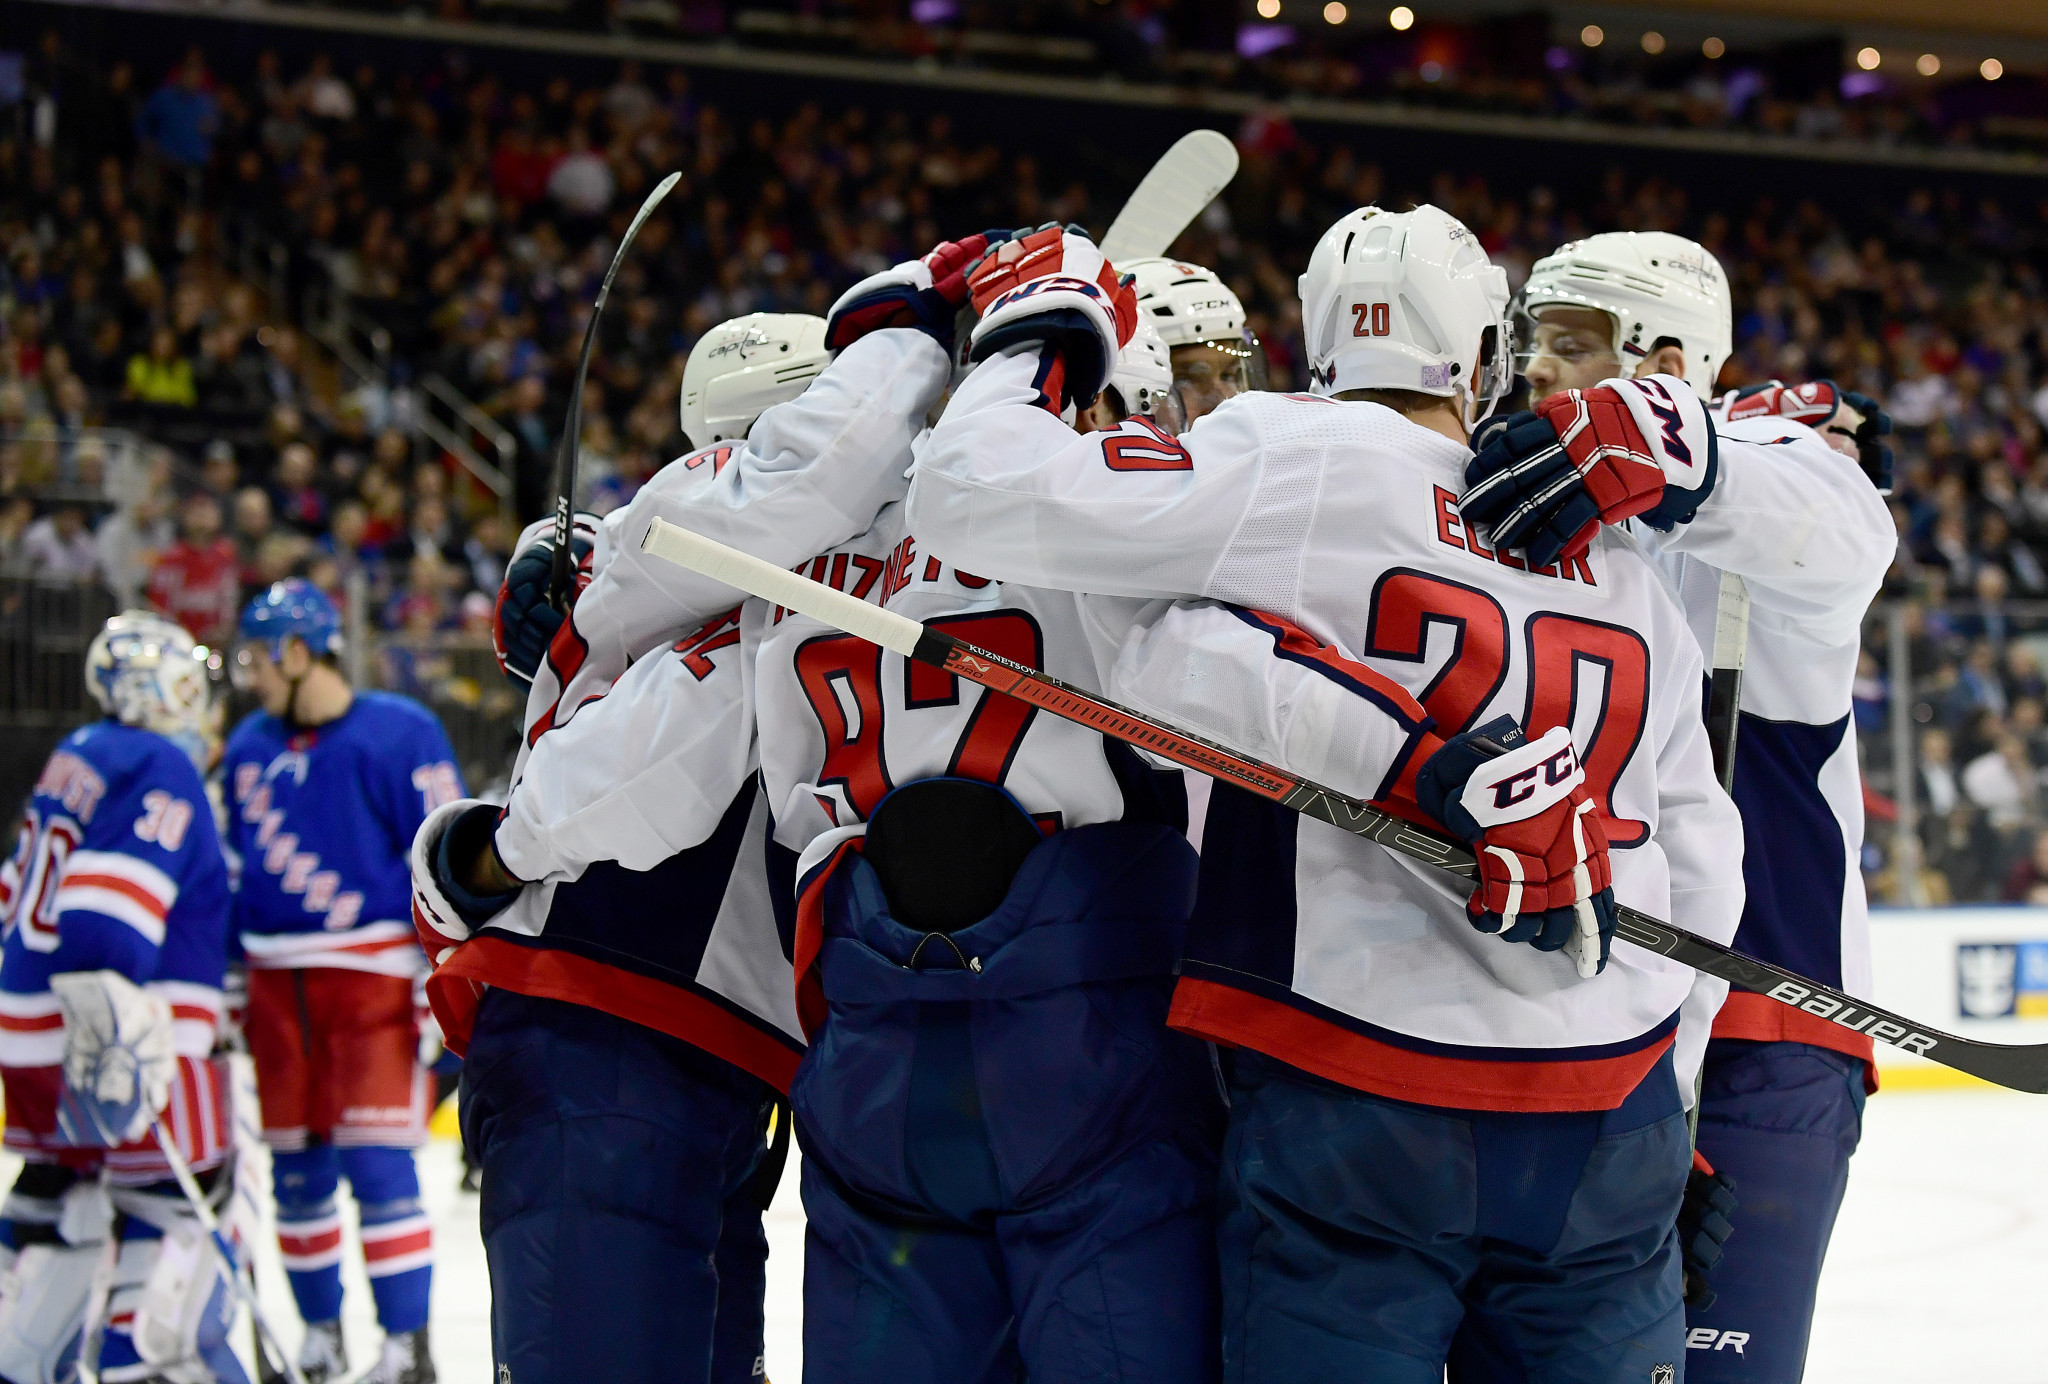 NHL team the Washington Capitals have declared their interest in playing a regular-season game in Russia or Sweden ©Getty Images